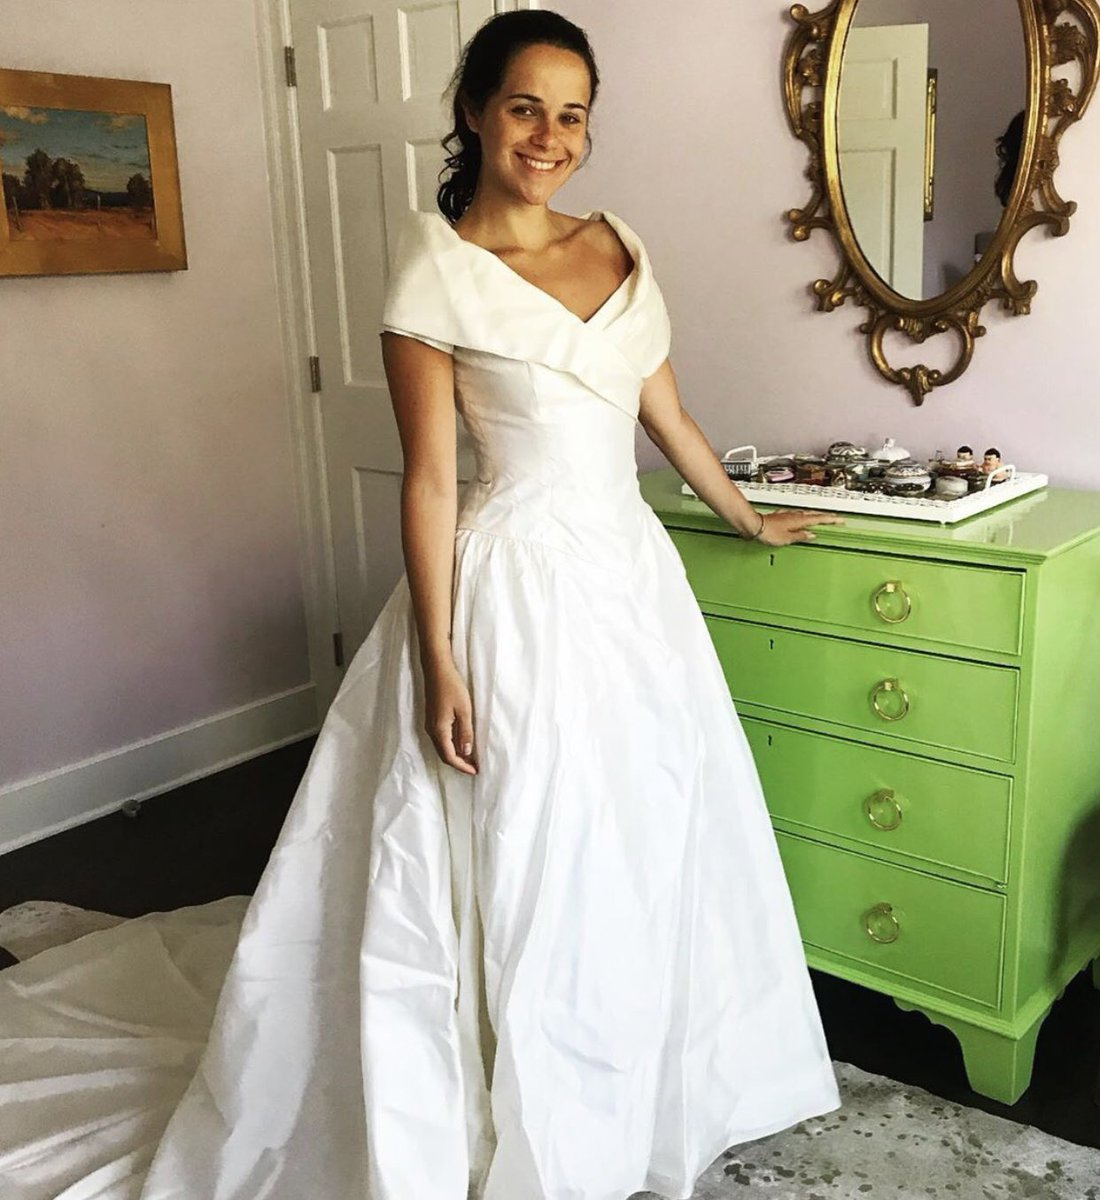 Katie Couric On Twitter Throwback To When Ellie And Carrie Tried On My Wedding Dress From 1989 And Decided It Wasn T For Them Especially The Pillbox Hat Https T Co 8qhi4ar4dw